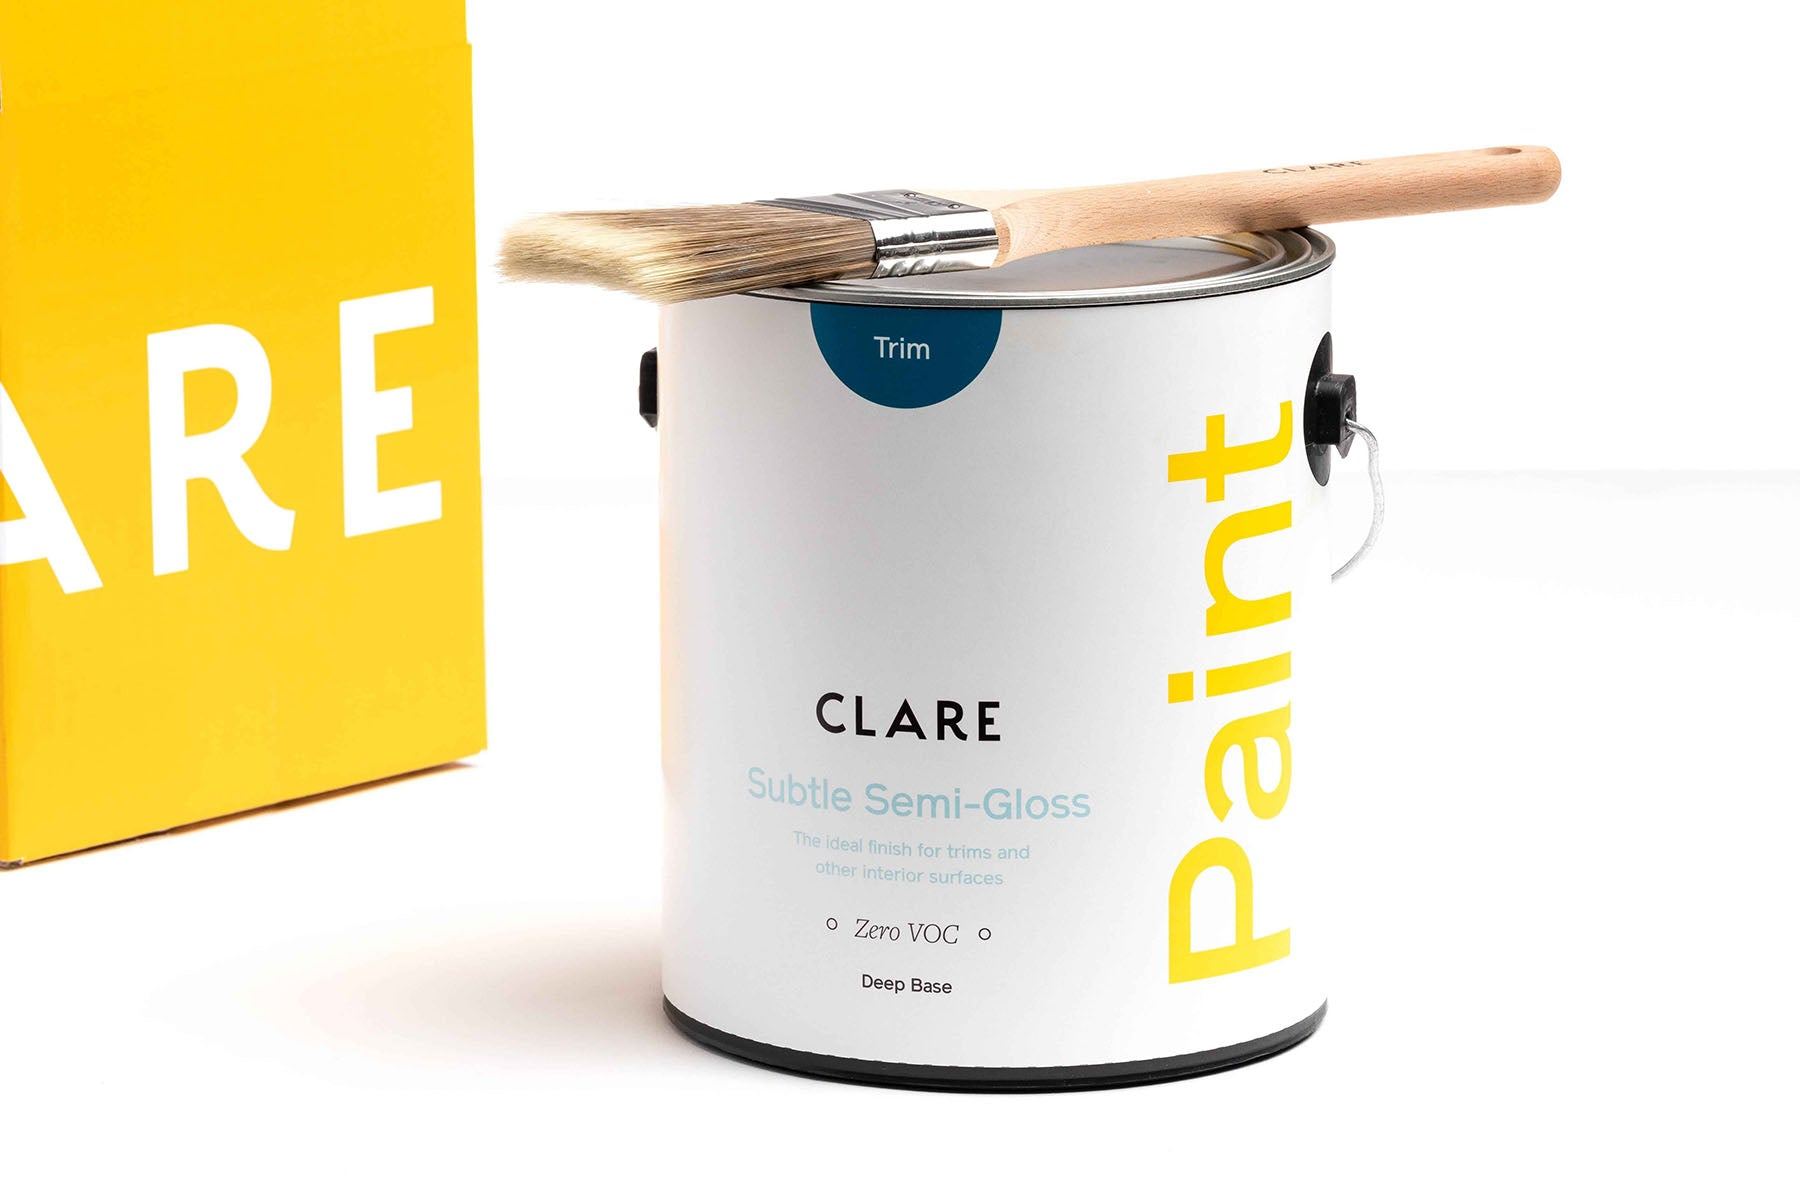 We have everything you need to paint trim like a pro. Read the best tips and advice on painting trim at Clare.com.